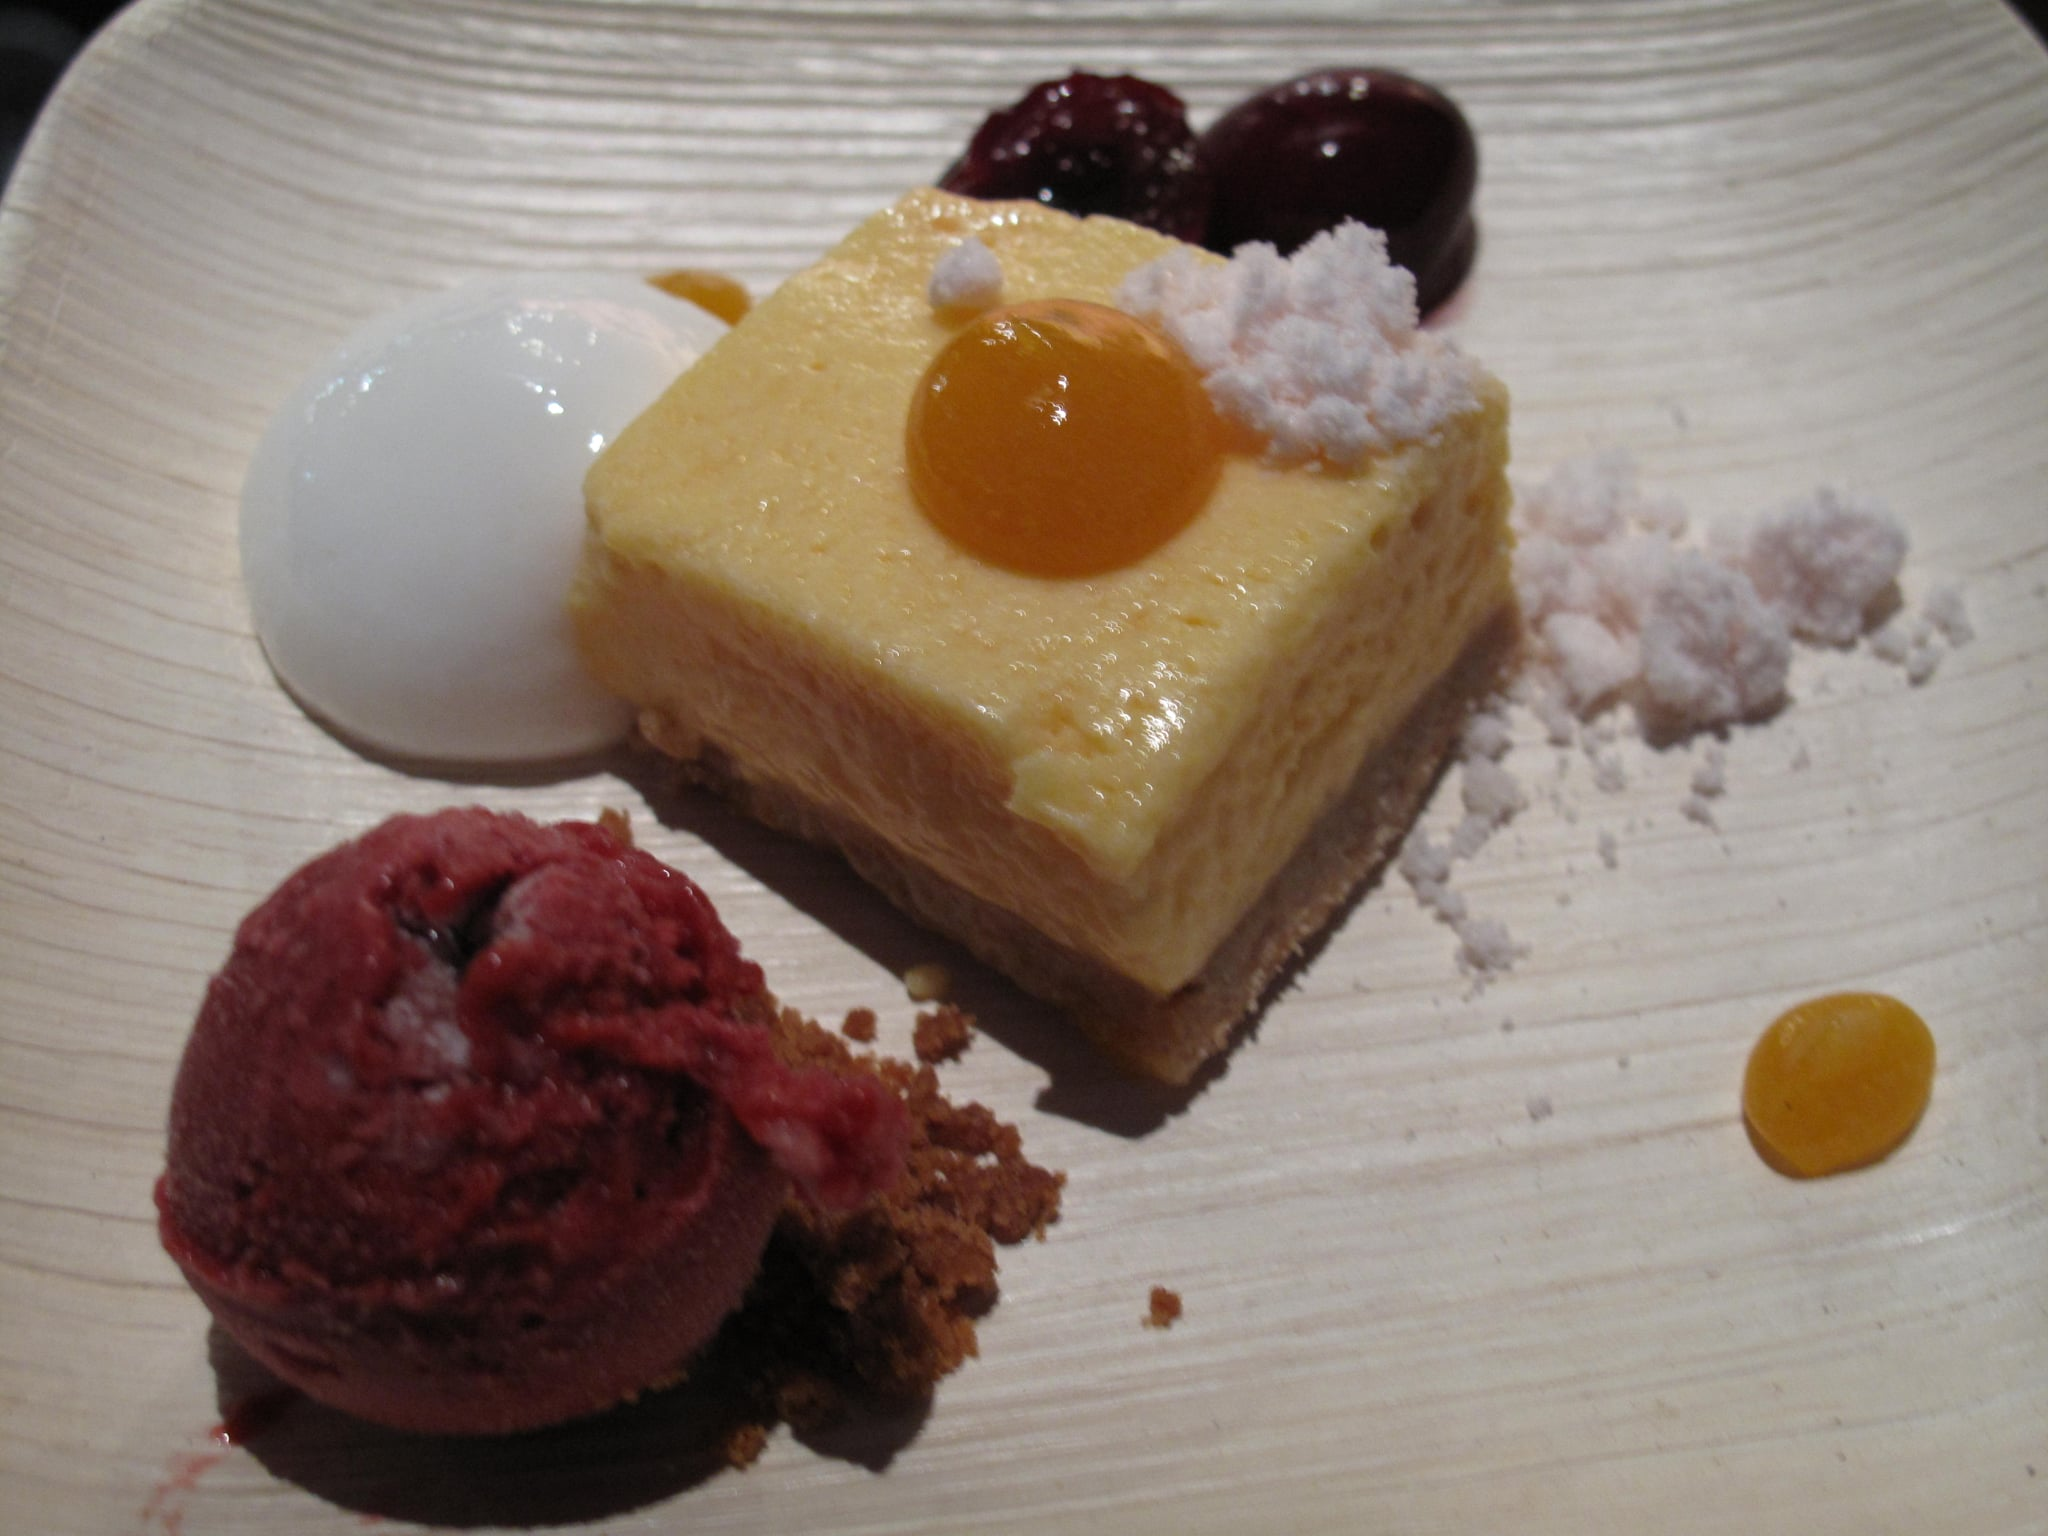 Pastry chef Catherine Schimenti of Michael Mina made an apricot mousse, cherries, and lemon verbena.